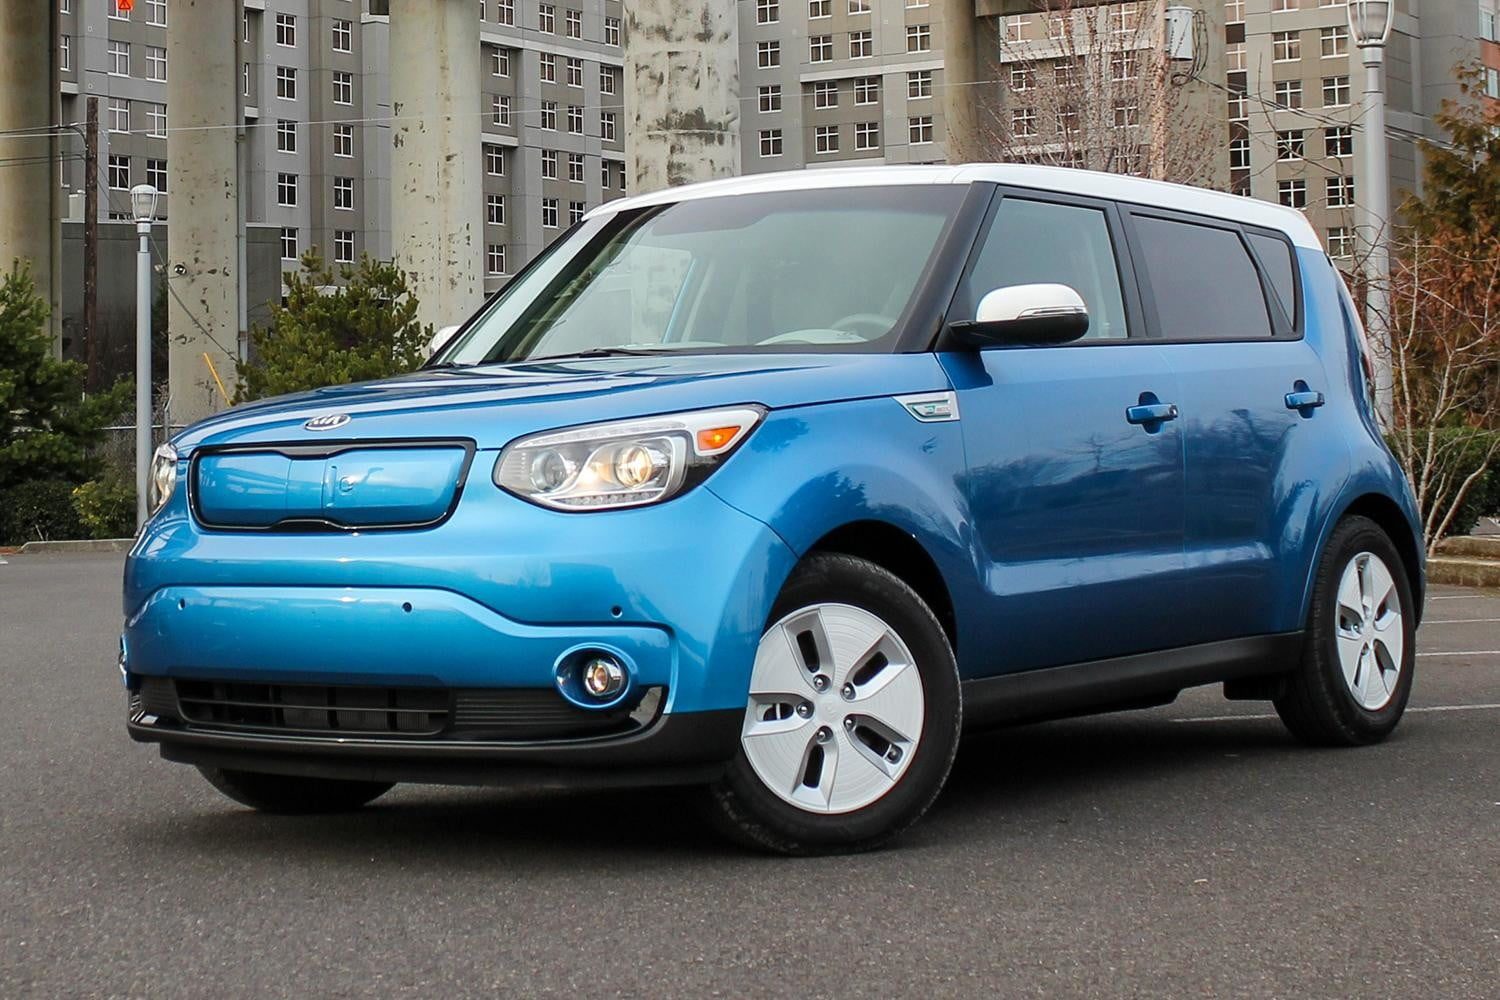 Kia Offers Apple CarPlay and Android Auto | Digital Trends